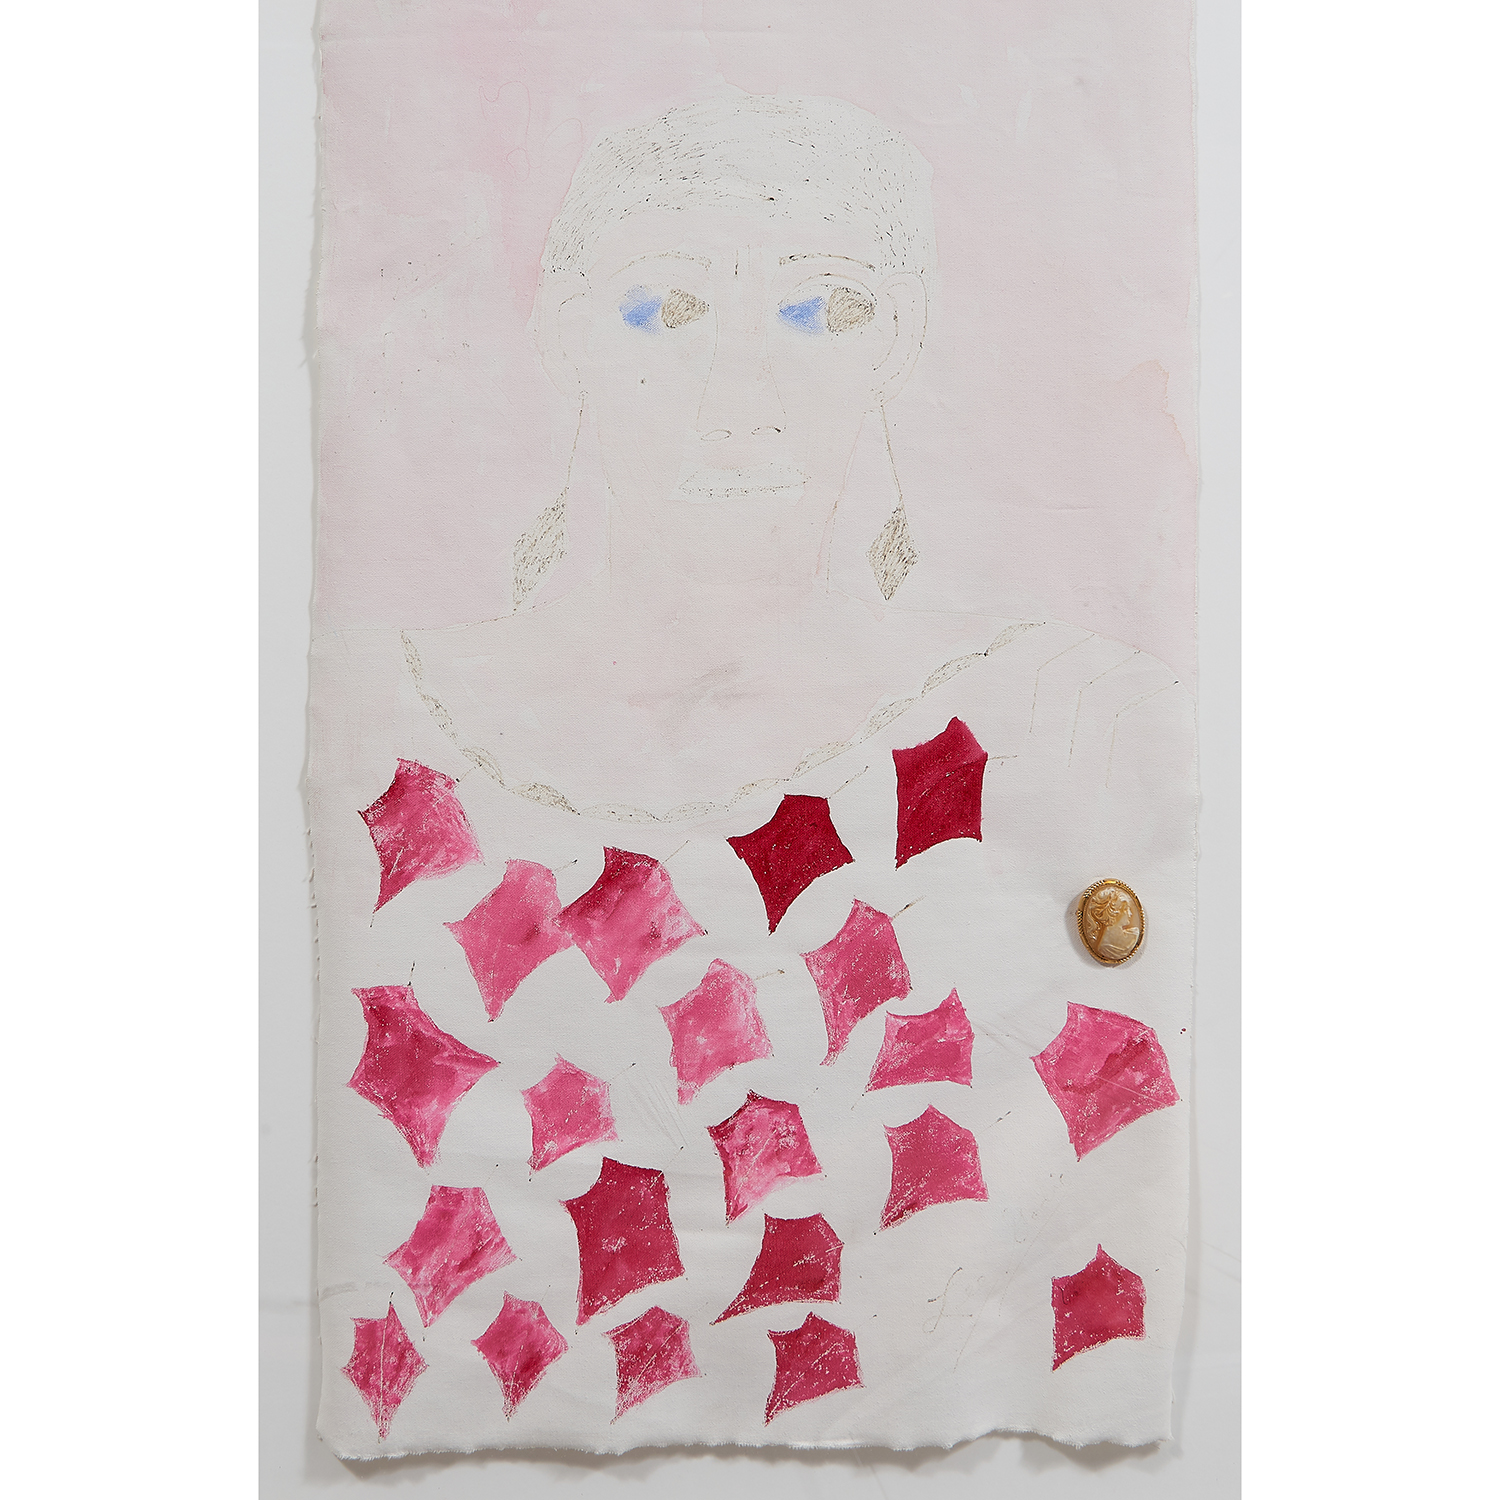 "Lee Godie, (American, 1908-1994), Untitled, ballpoint pen and watercolor on window shade canvas with found object, 52"" x 19"""